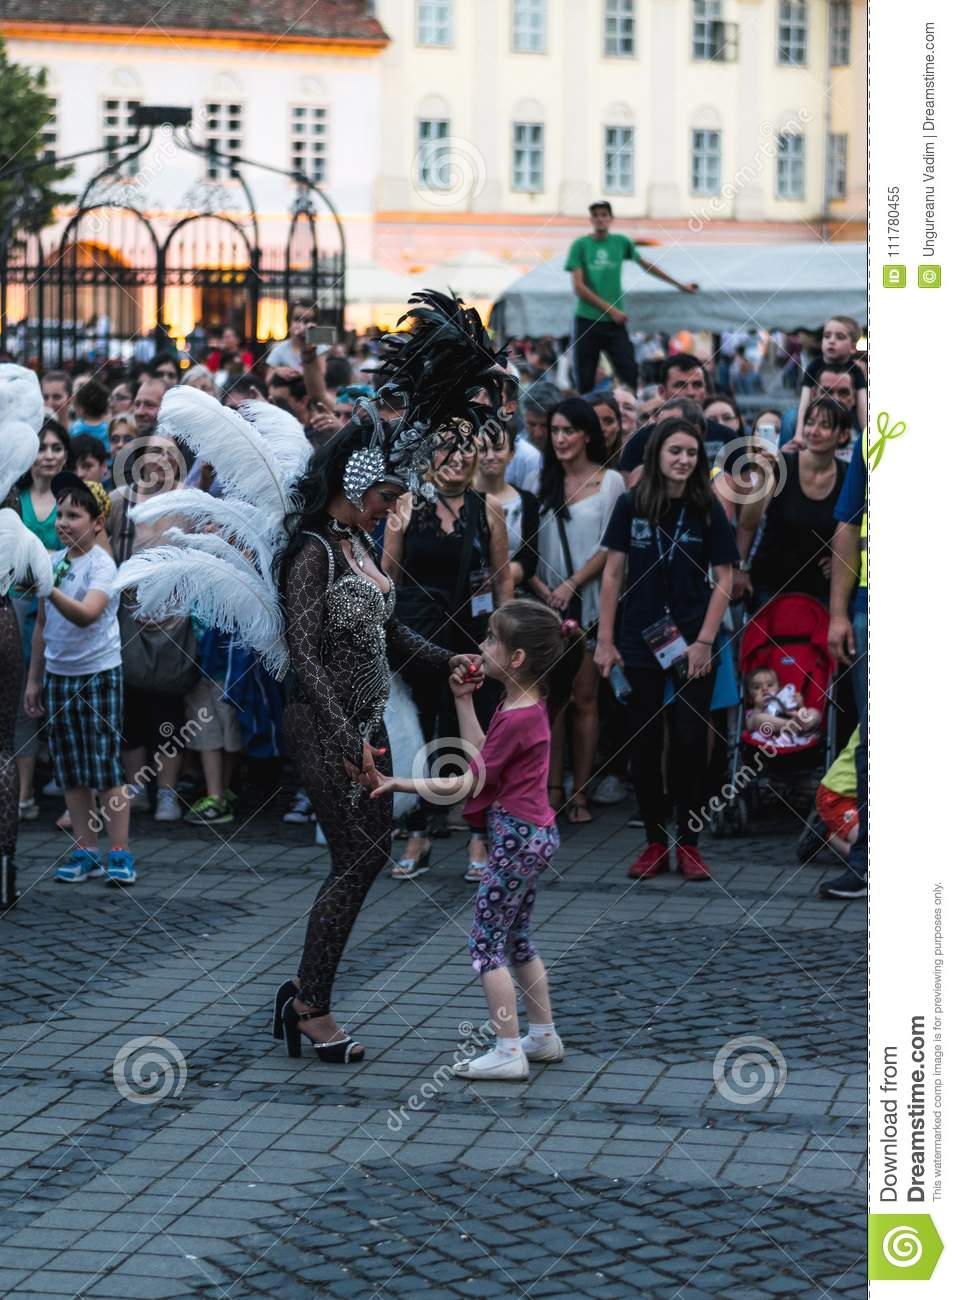 SIBIU, ROMANIA - 17 JUNE 2016: A girl is dancing with a member of Torrevieja Carnival Group dancers, during Sibiu International Th